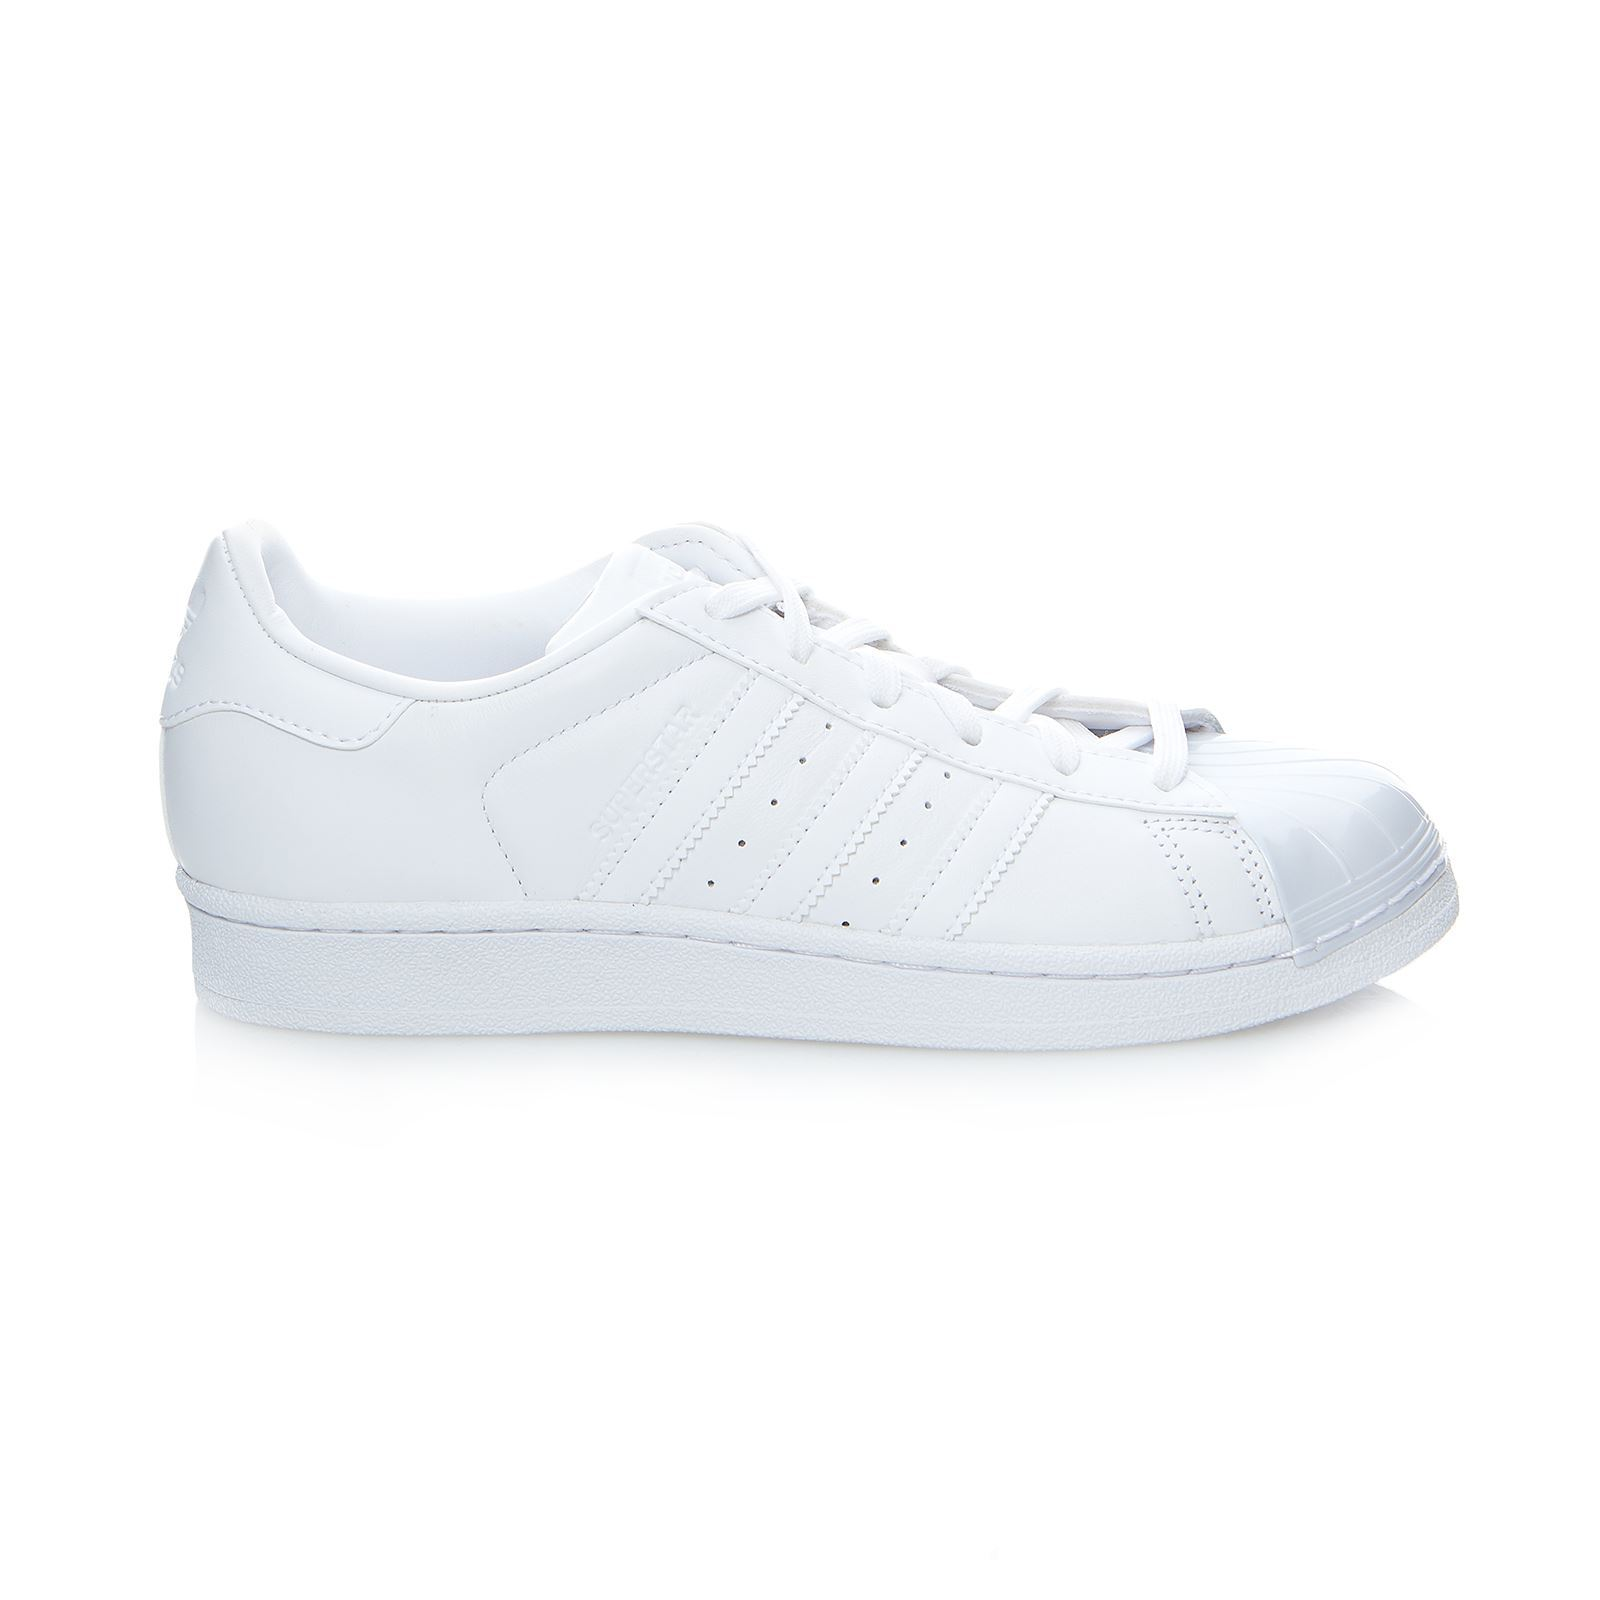 adidas Originals SUPERSTAR GLOSSY TO - Baskets - blanc